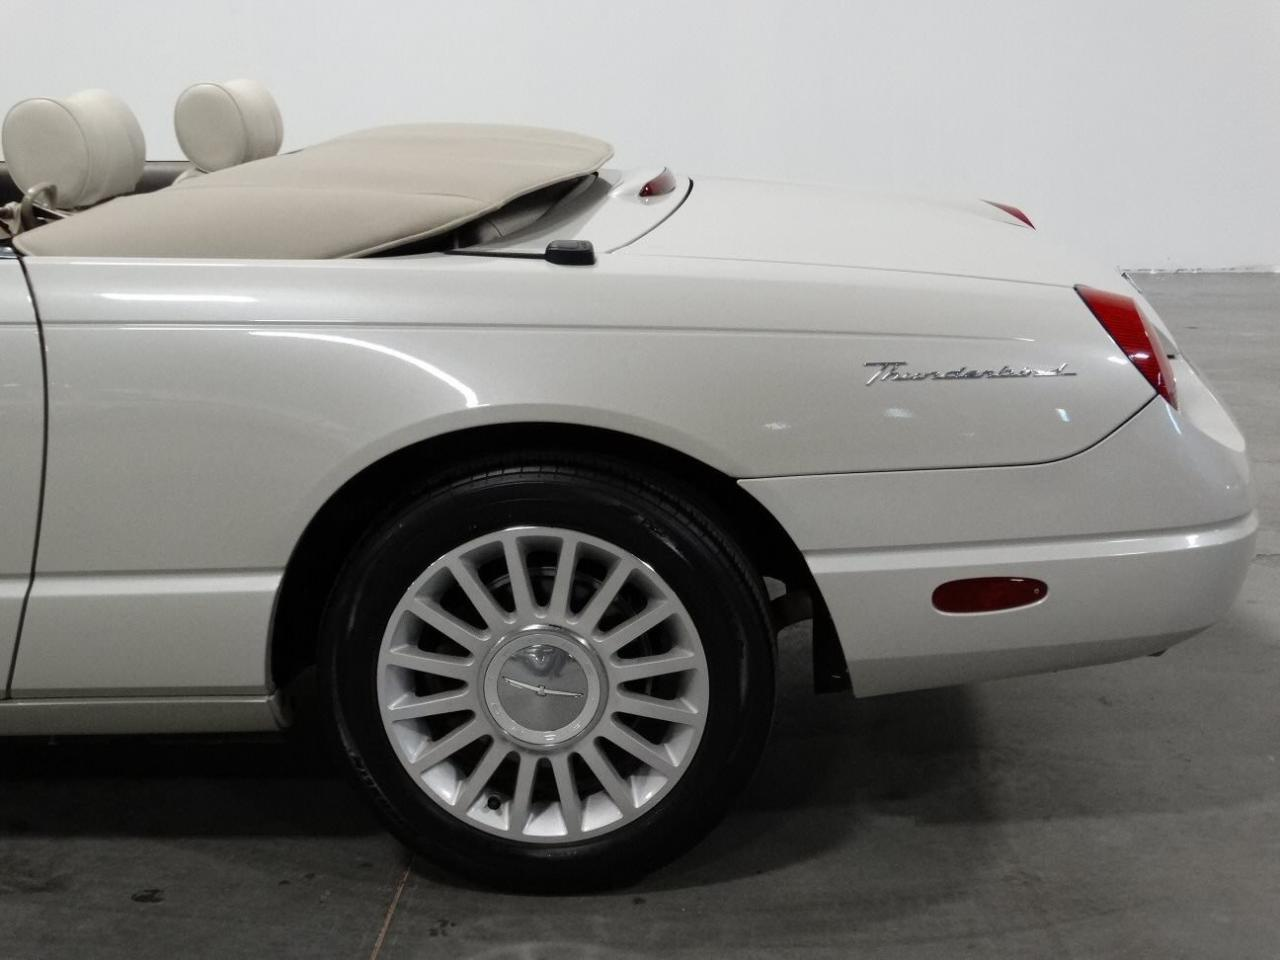 Large Picture of '05 Thunderbird located in Alpharetta Georgia - $32,995.00 Offered by Gateway Classic Cars - Atlanta - KMSO